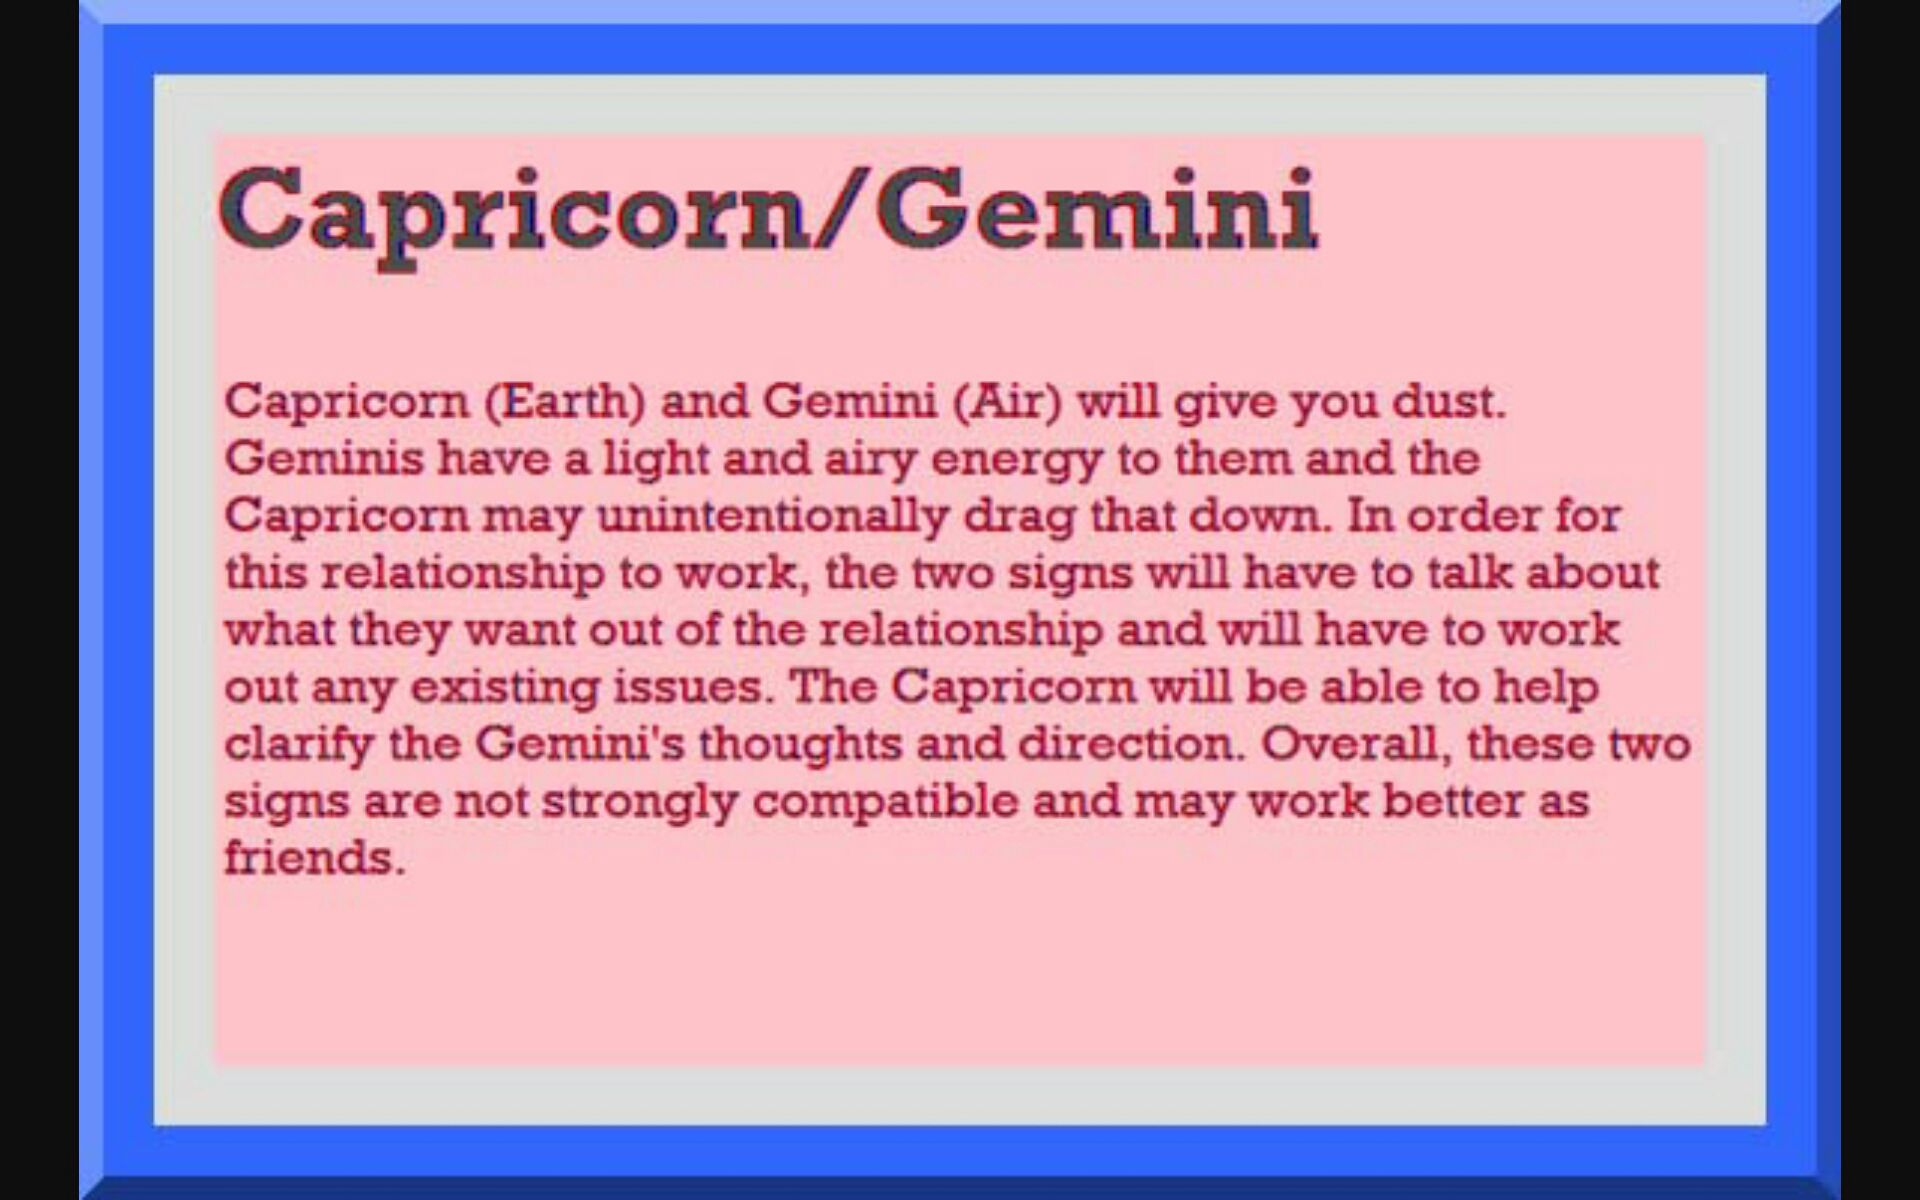 Capricorns and geminis